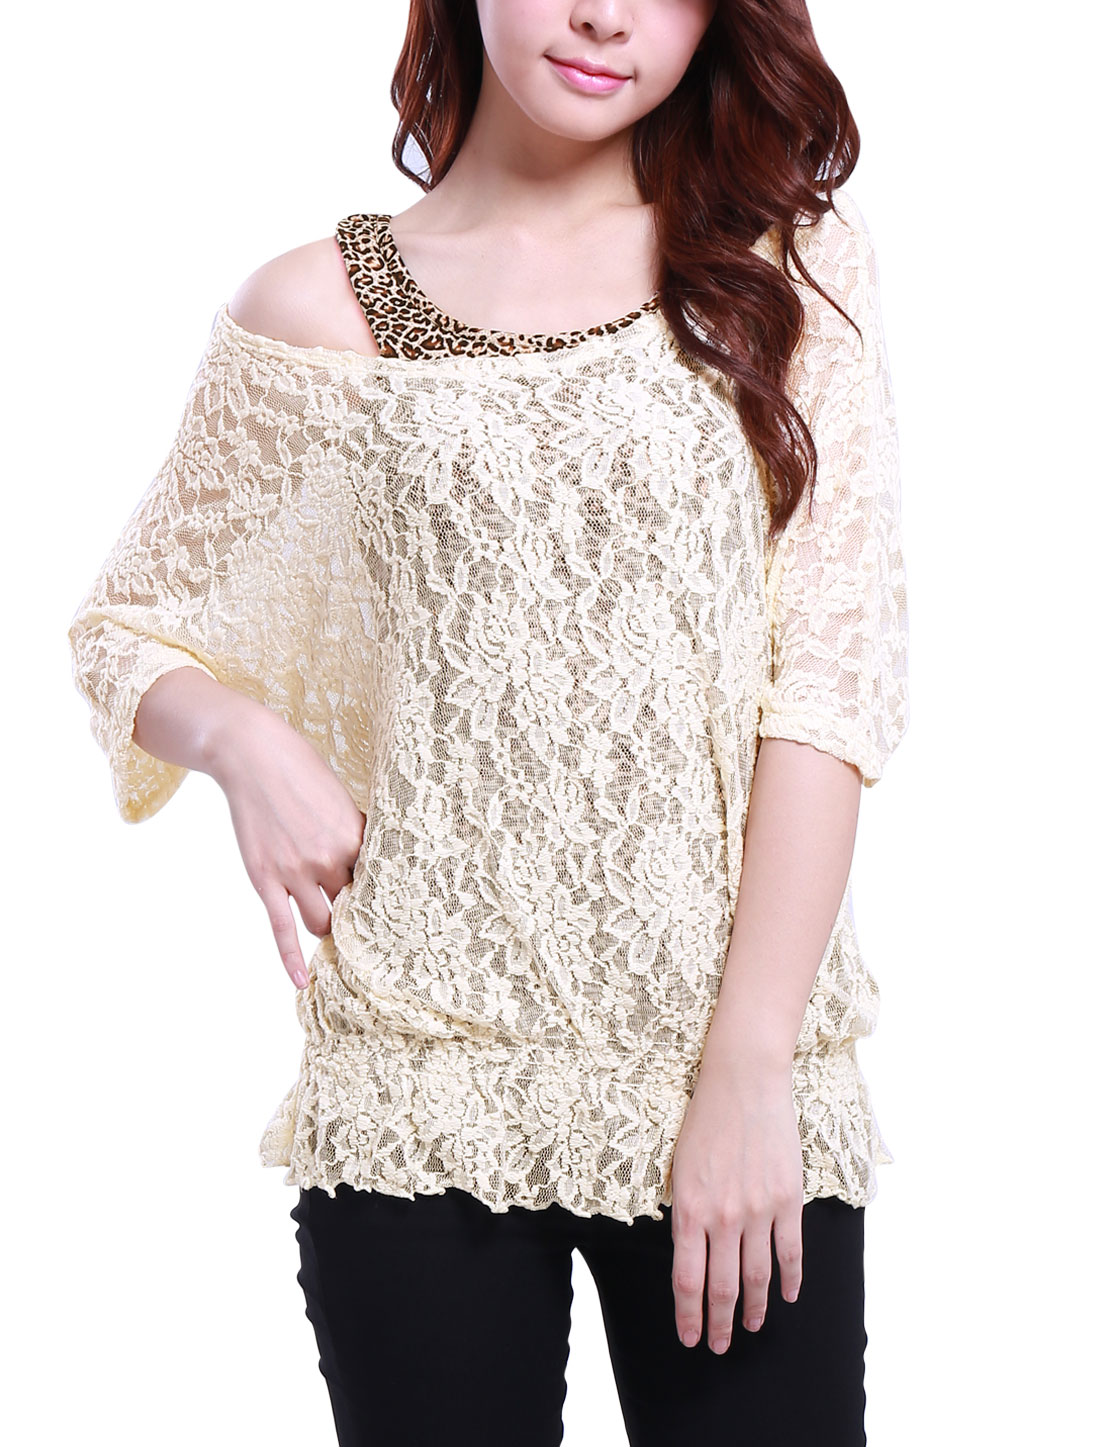 Beige Scoop Neck Lace Sheer Loose Shirt w Tank Top XS for Ladies